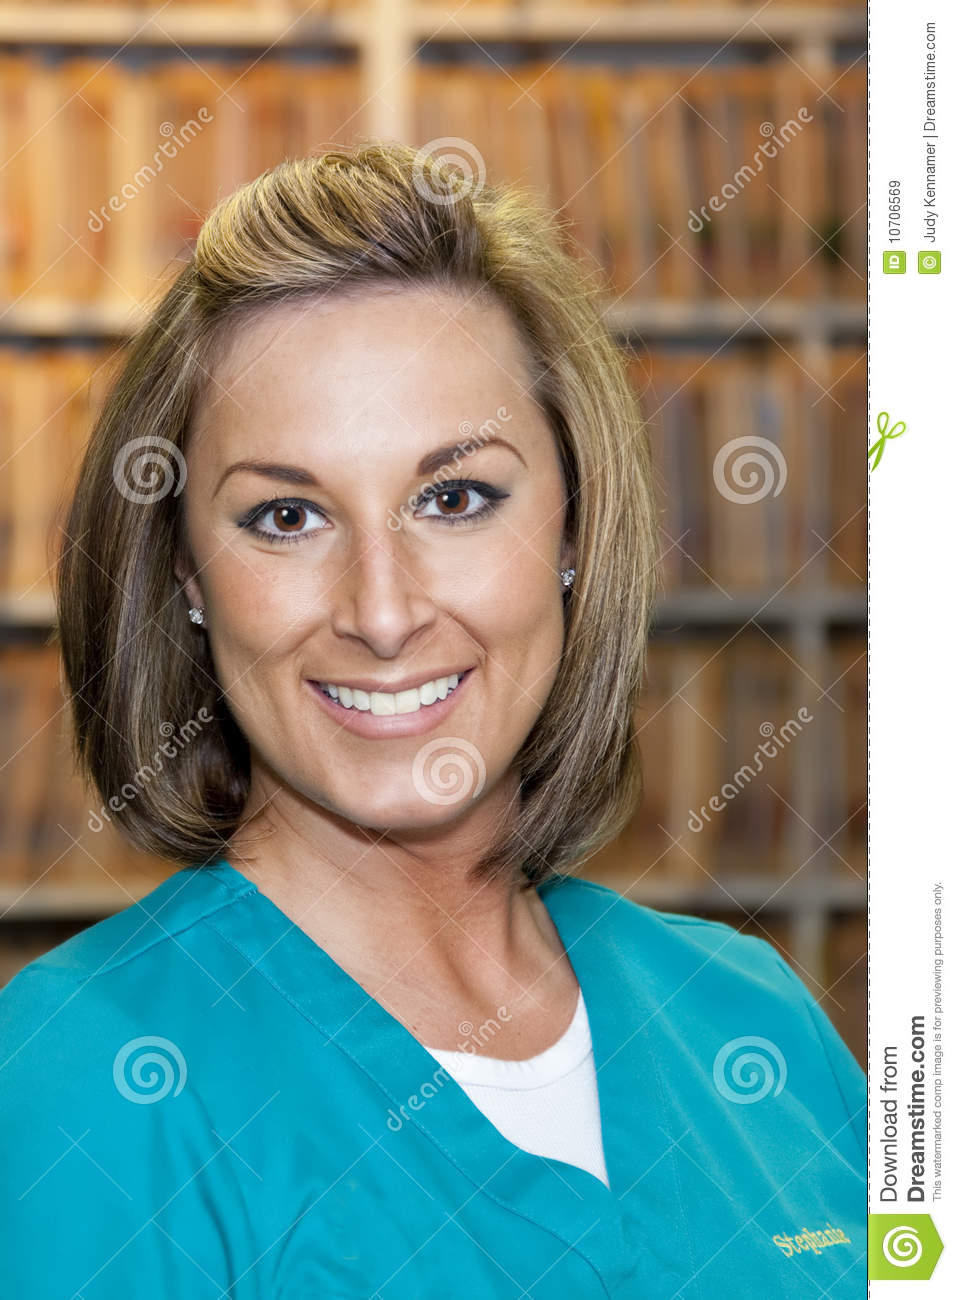 Female Medical Assistant Stock Image Image Of Brown